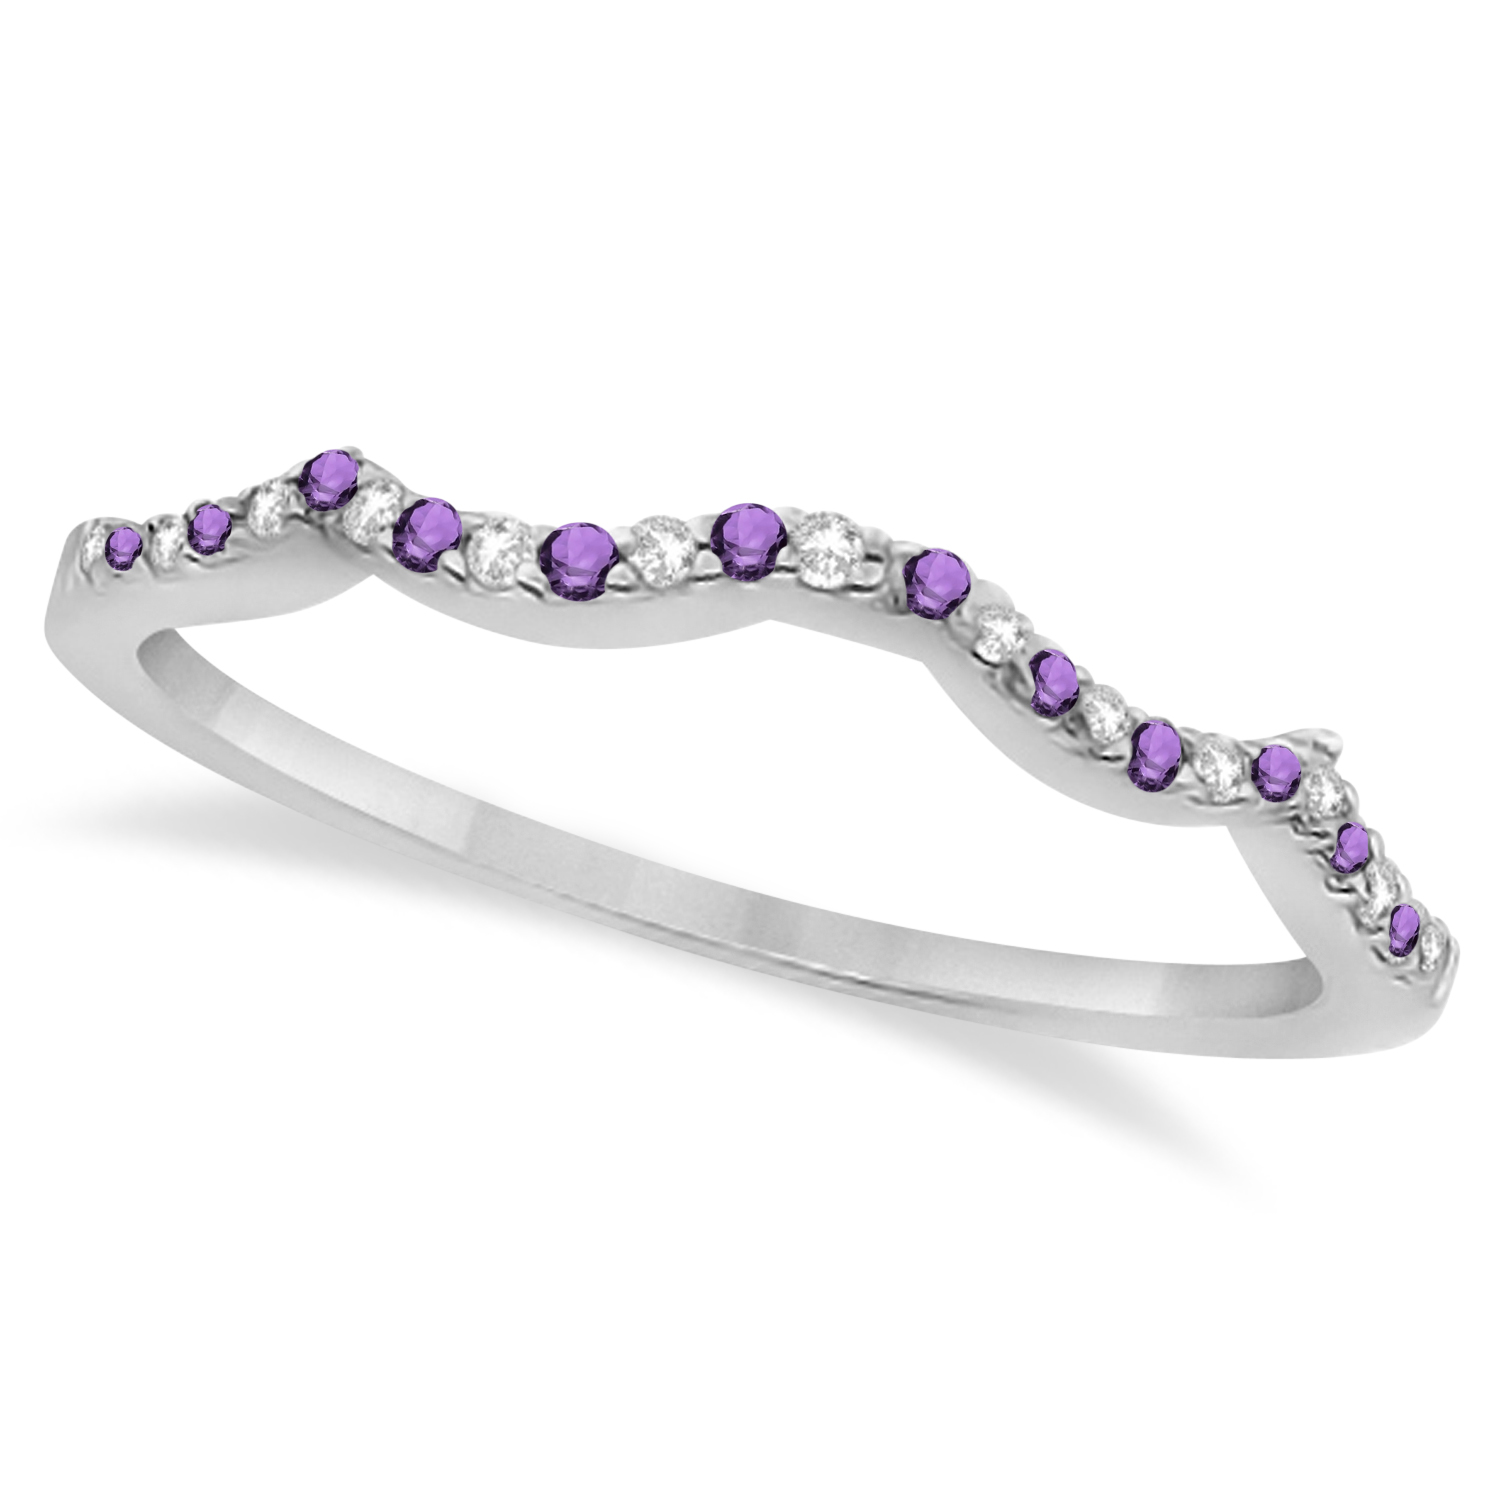 Amethyst & Diamond Infinity Style Bridal Set 14k White Gold 1.69ct